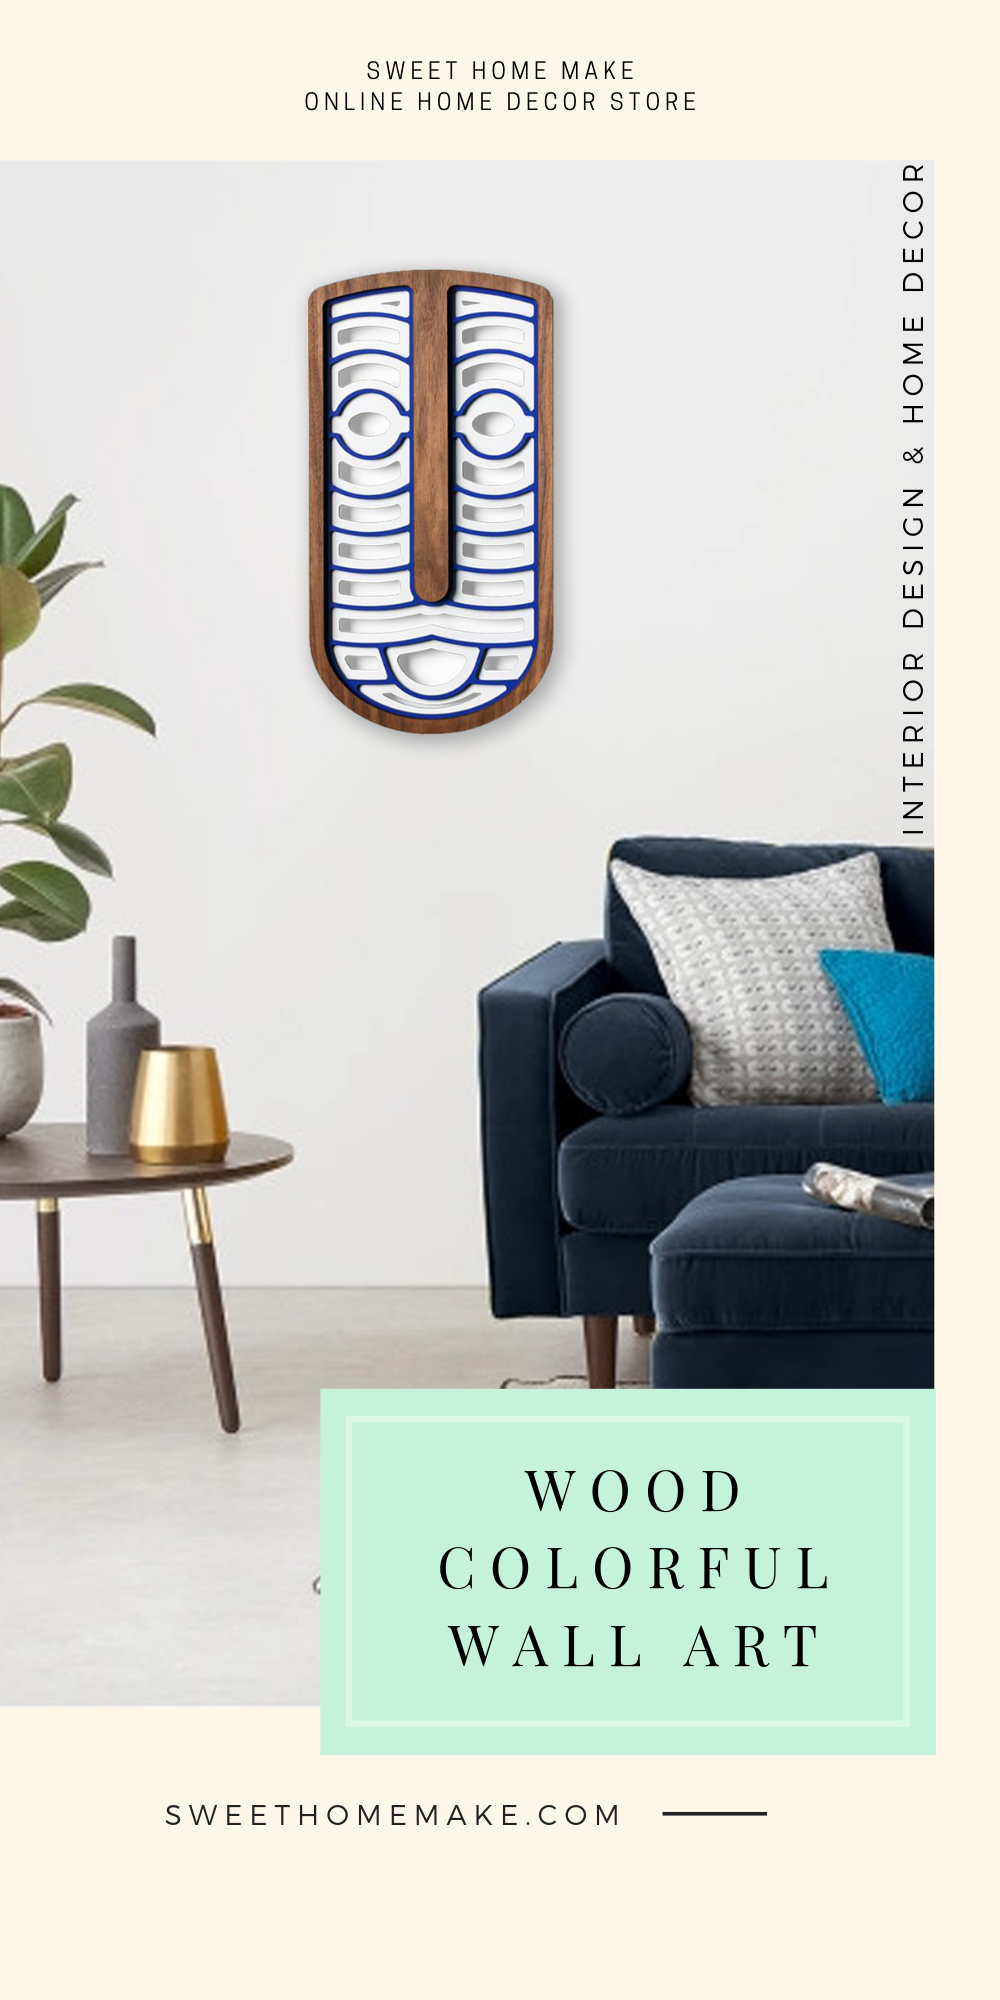 Blue and White with Wood Wall Art